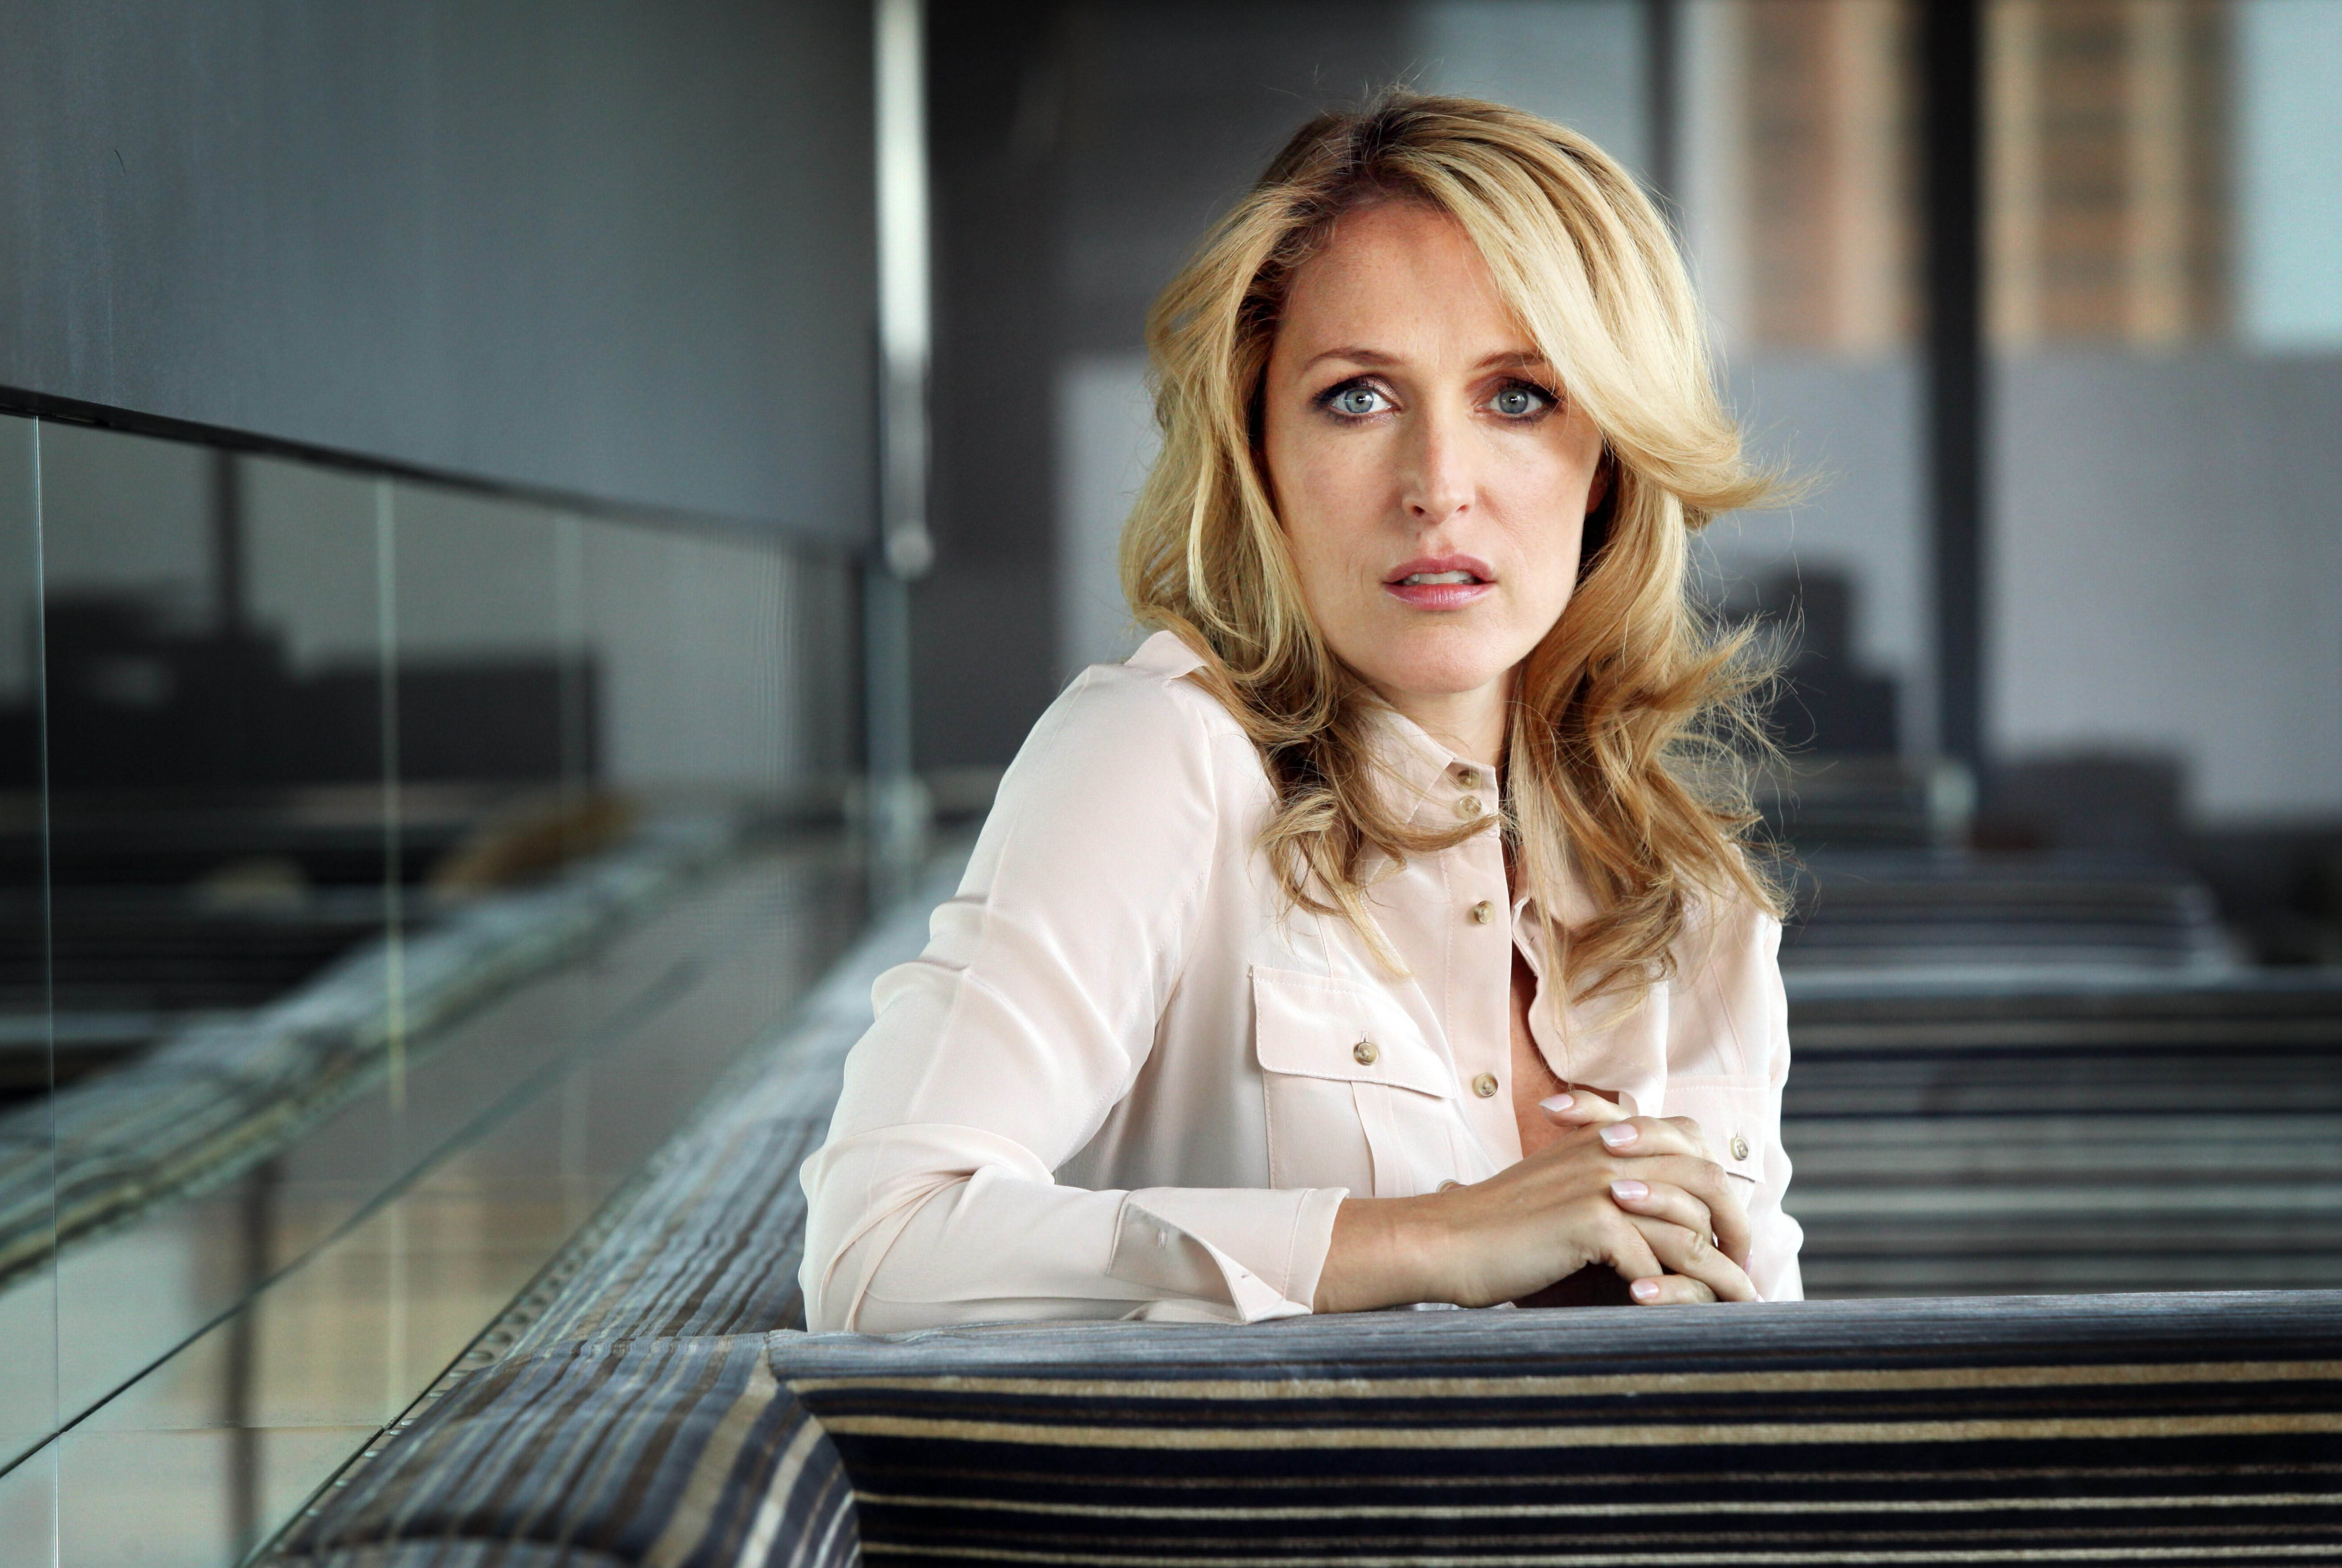 5592x3744 - Gillian Anderson Wallpapers 28